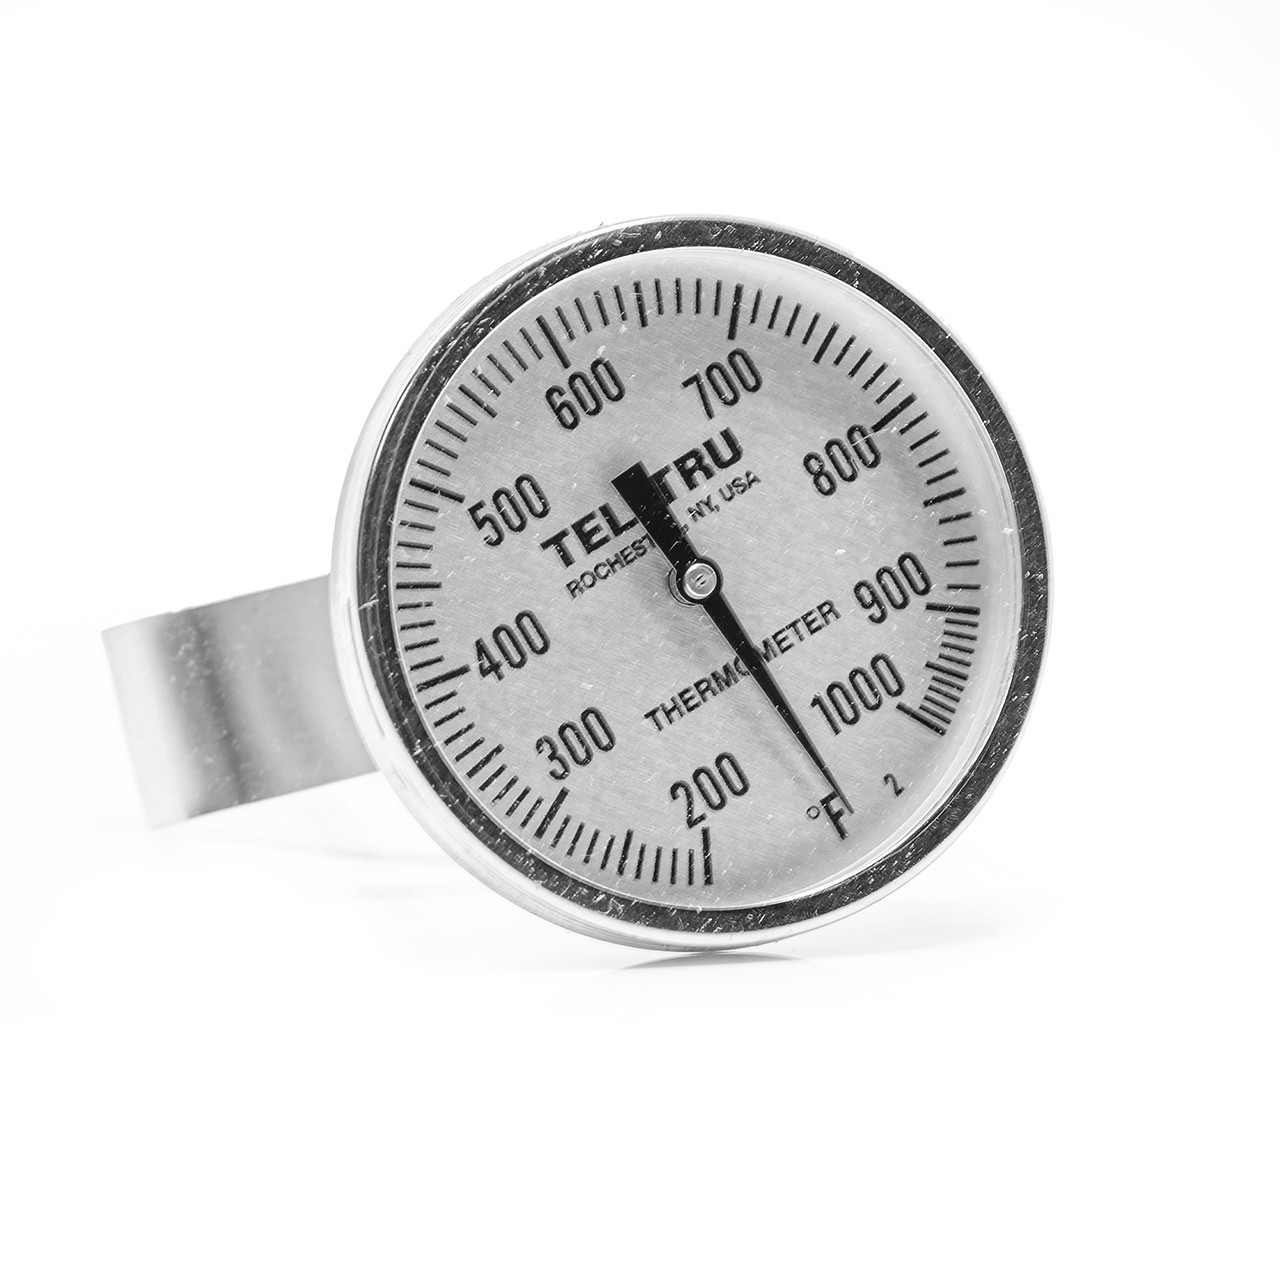 Stack thermometer